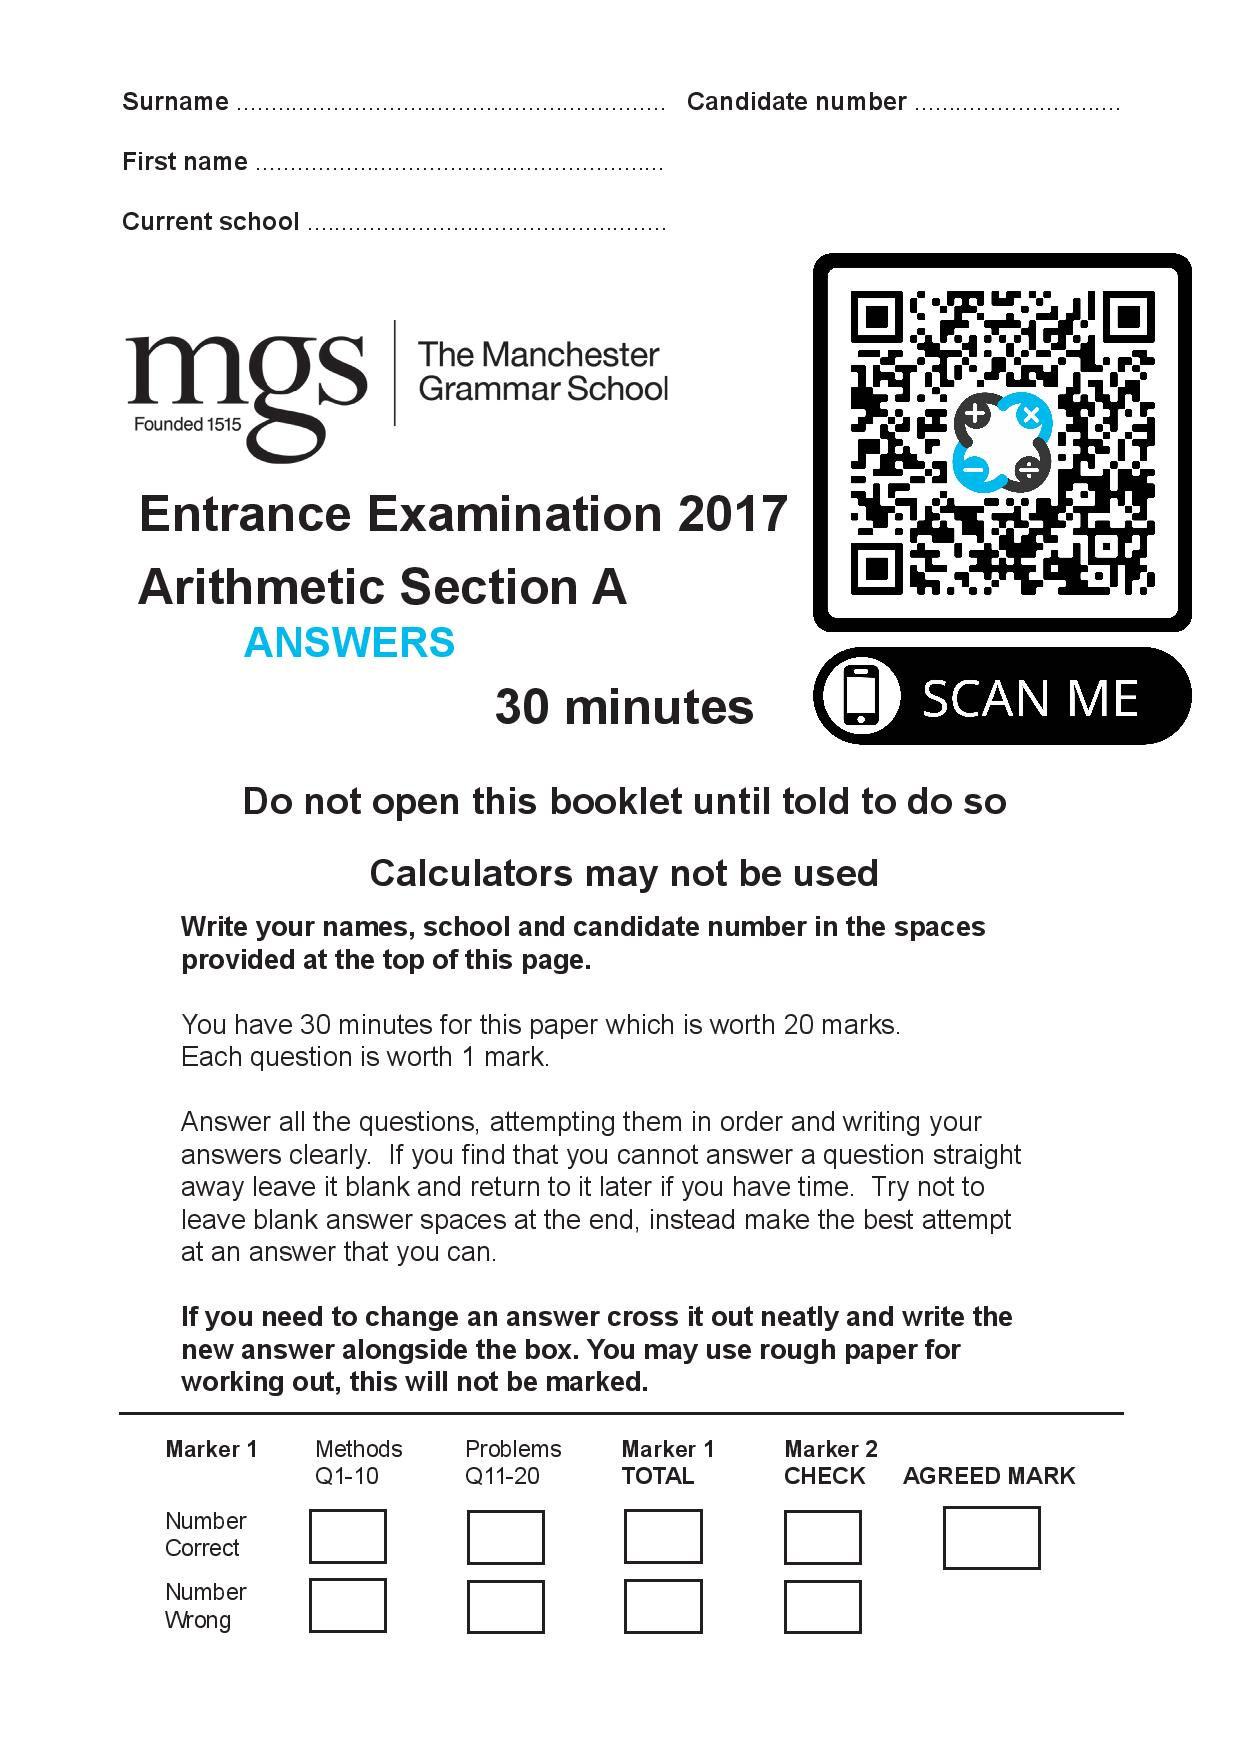 The Manchester Grammar School Entrance Examination 2017 Arithmetic Section A page 001